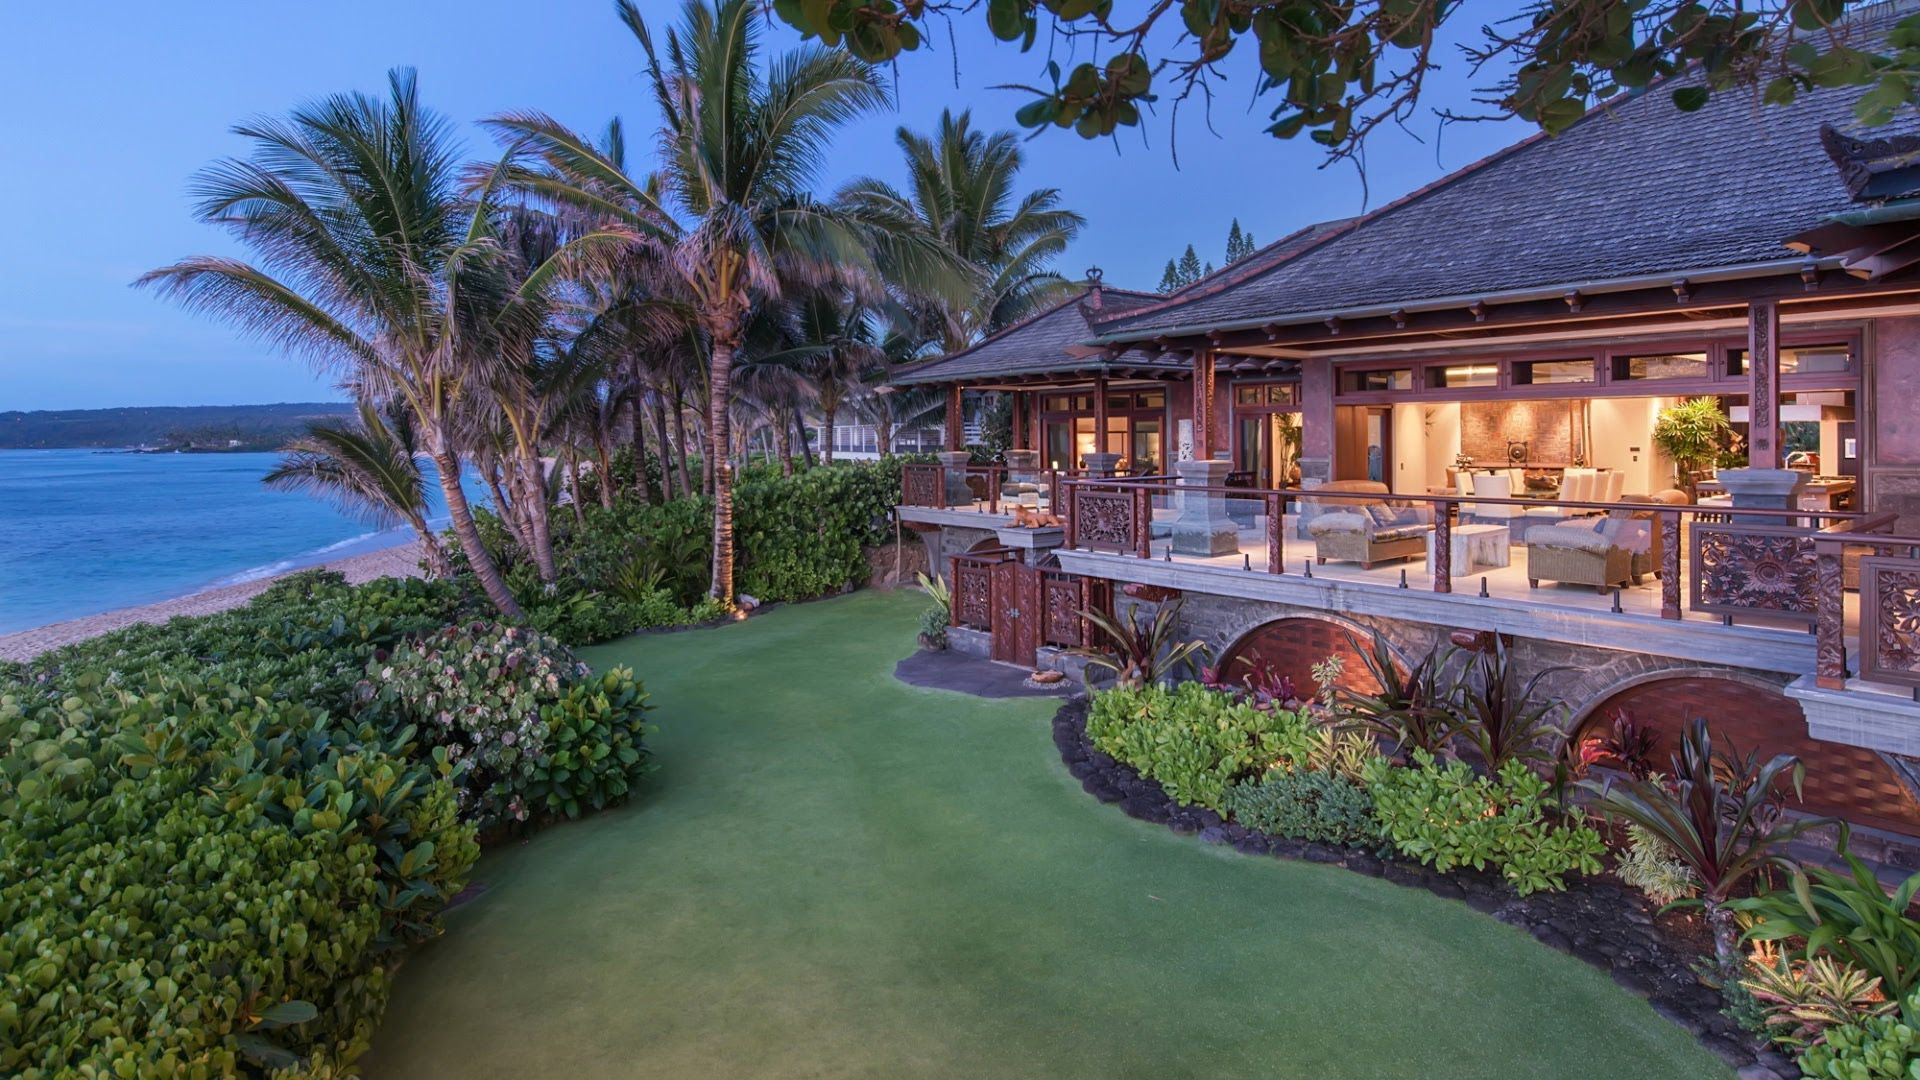 Rental Homes In Kauai Beachfront